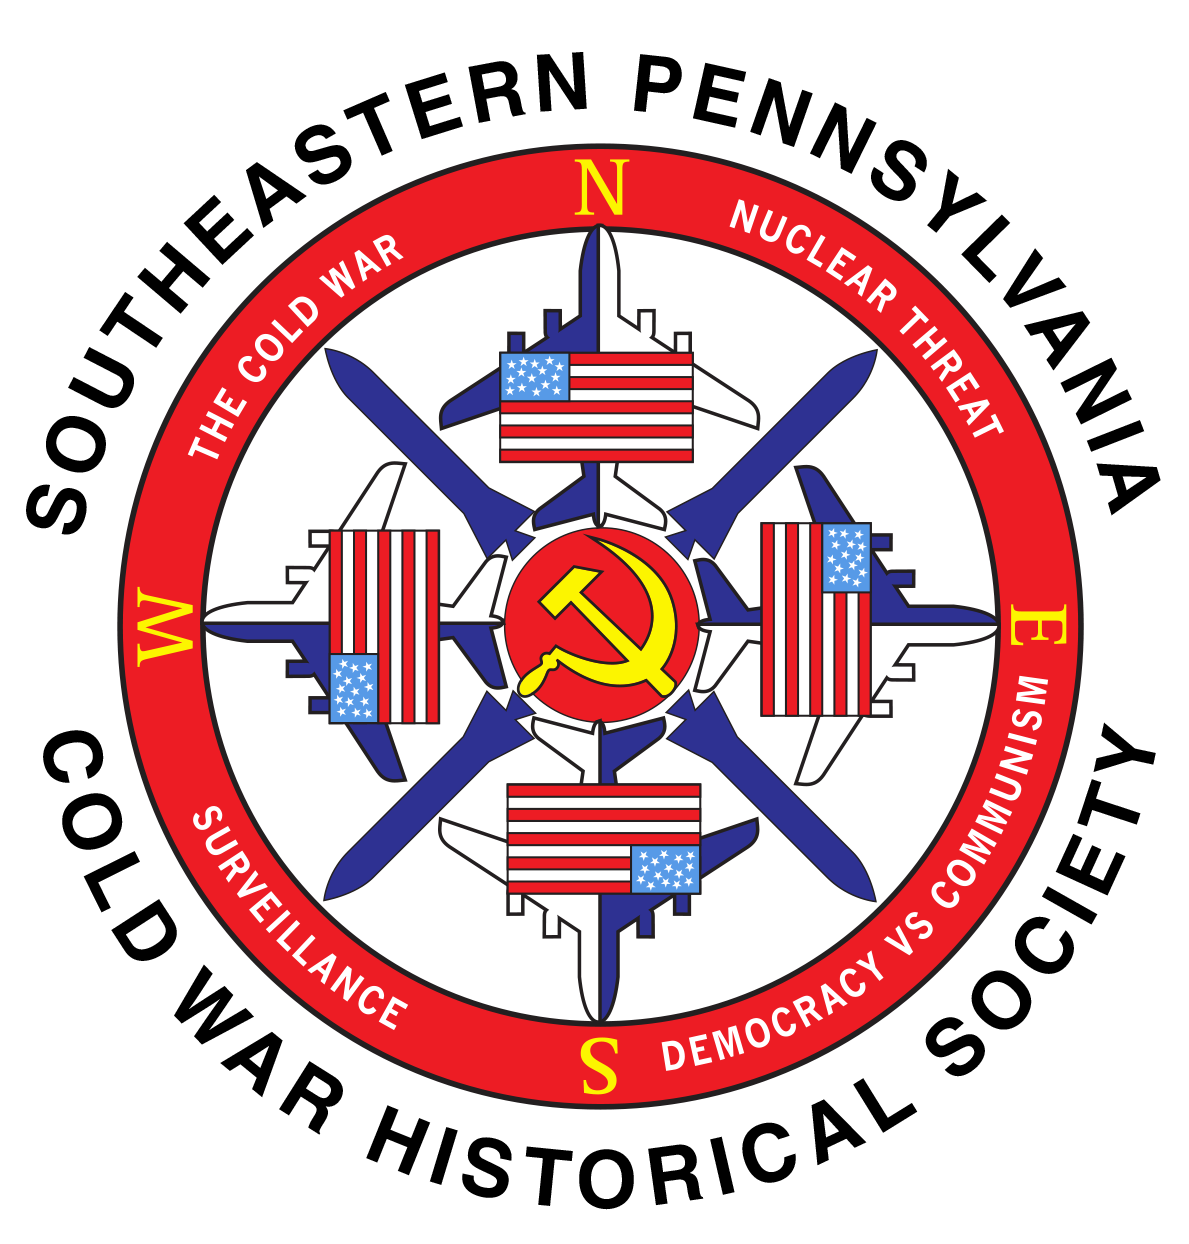 cold war historical society logo